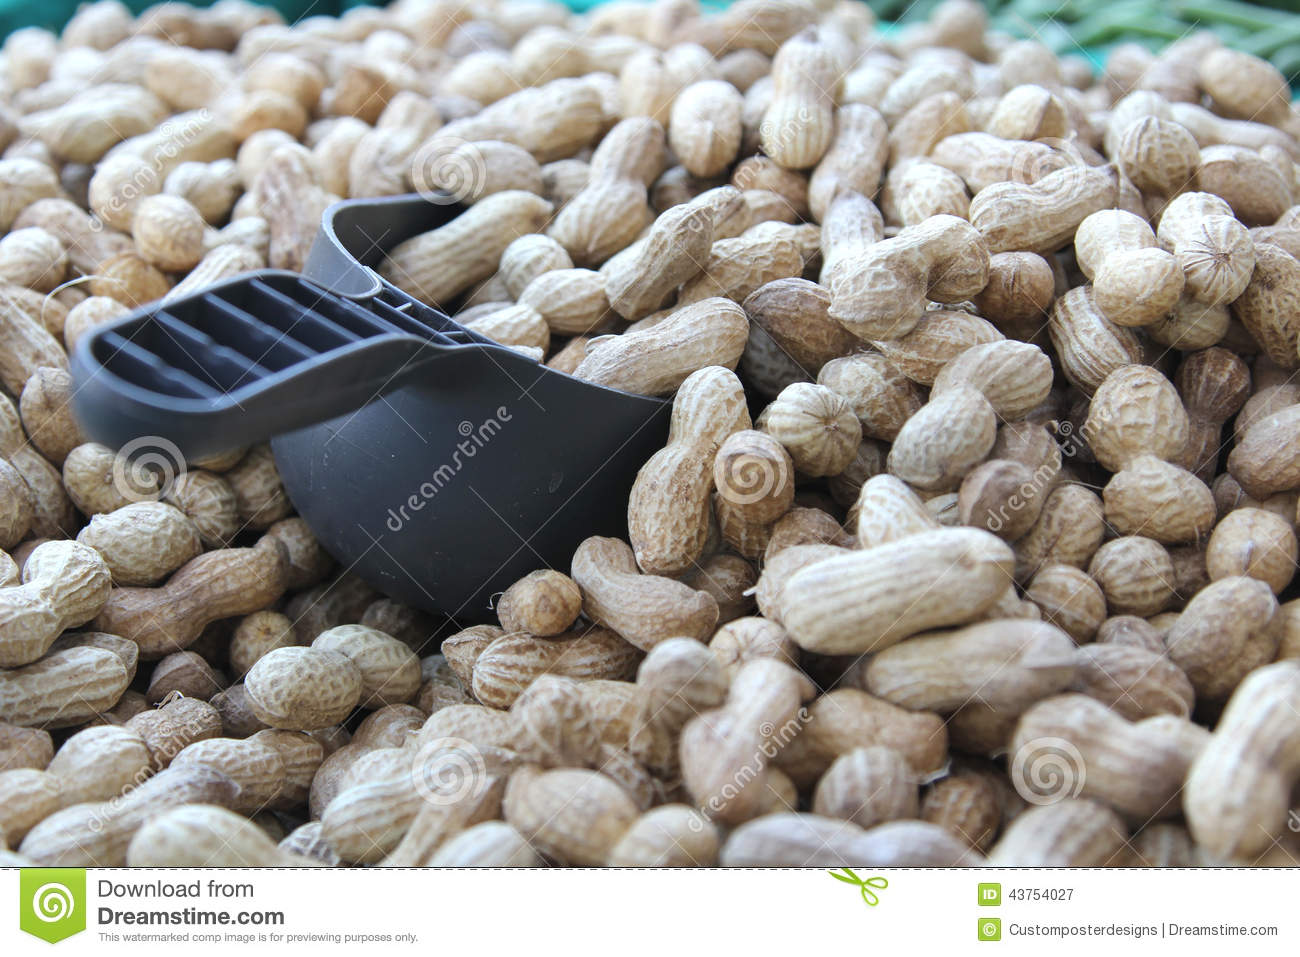 Download Bulk Peanuts At The Farmer's Market. Stock Image - Image of lilfestyle, health: 43754027